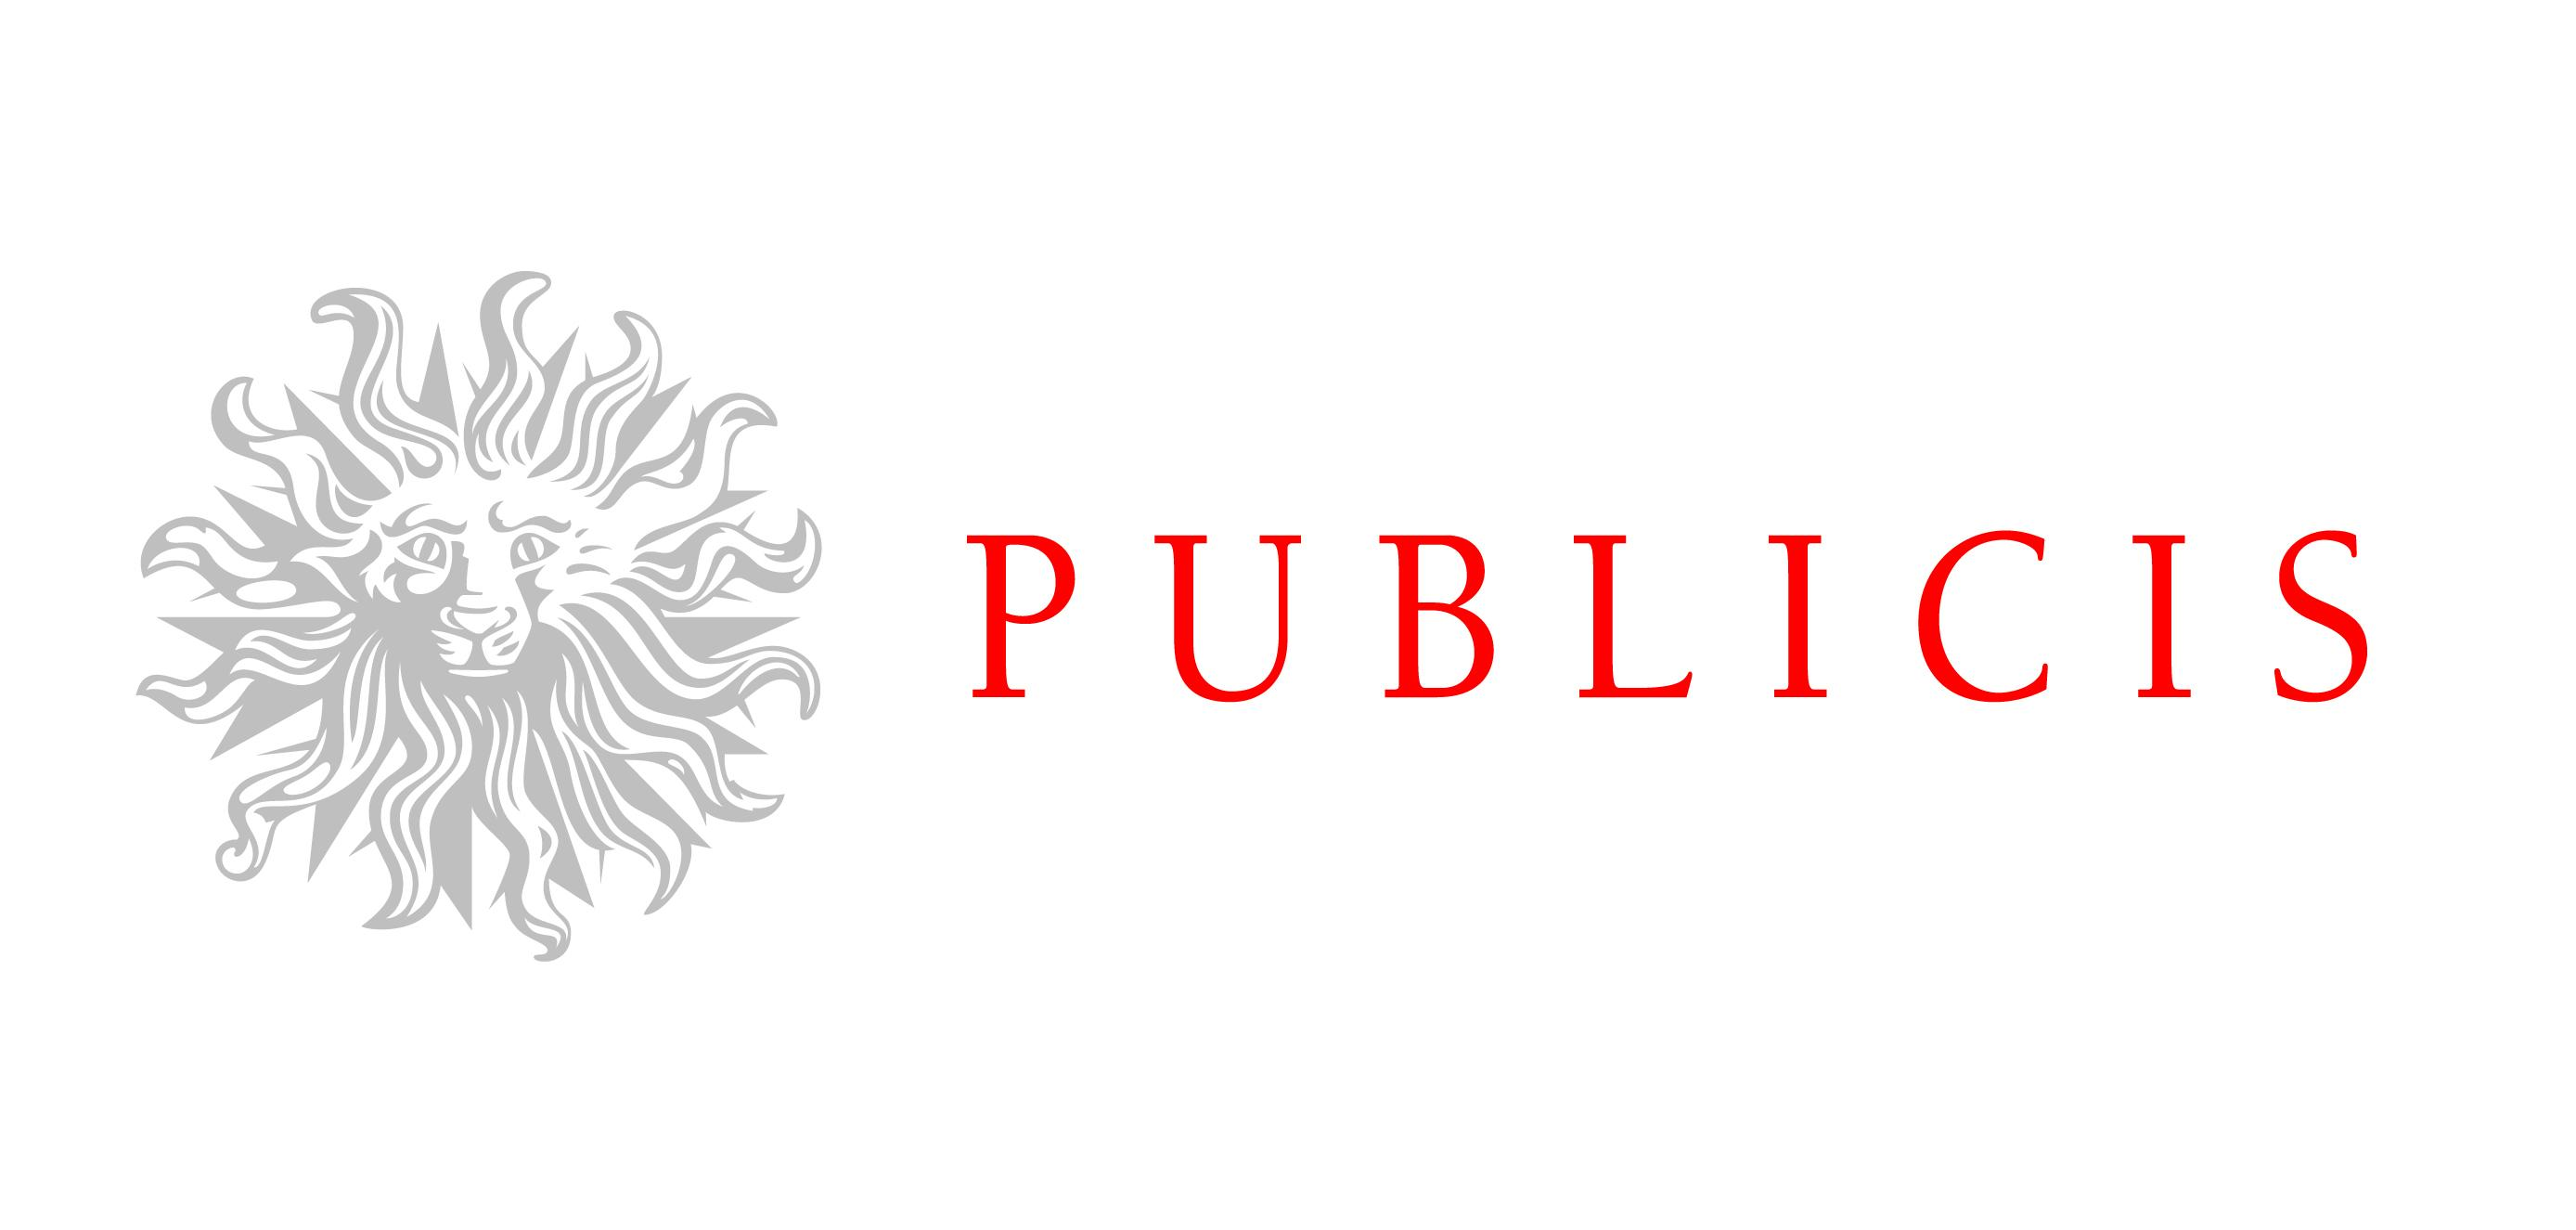 publicis groupe Publicis groupe sa is an agency based in france find publicis groupe sa contacts, clients, annual billings, and more at redbooks.